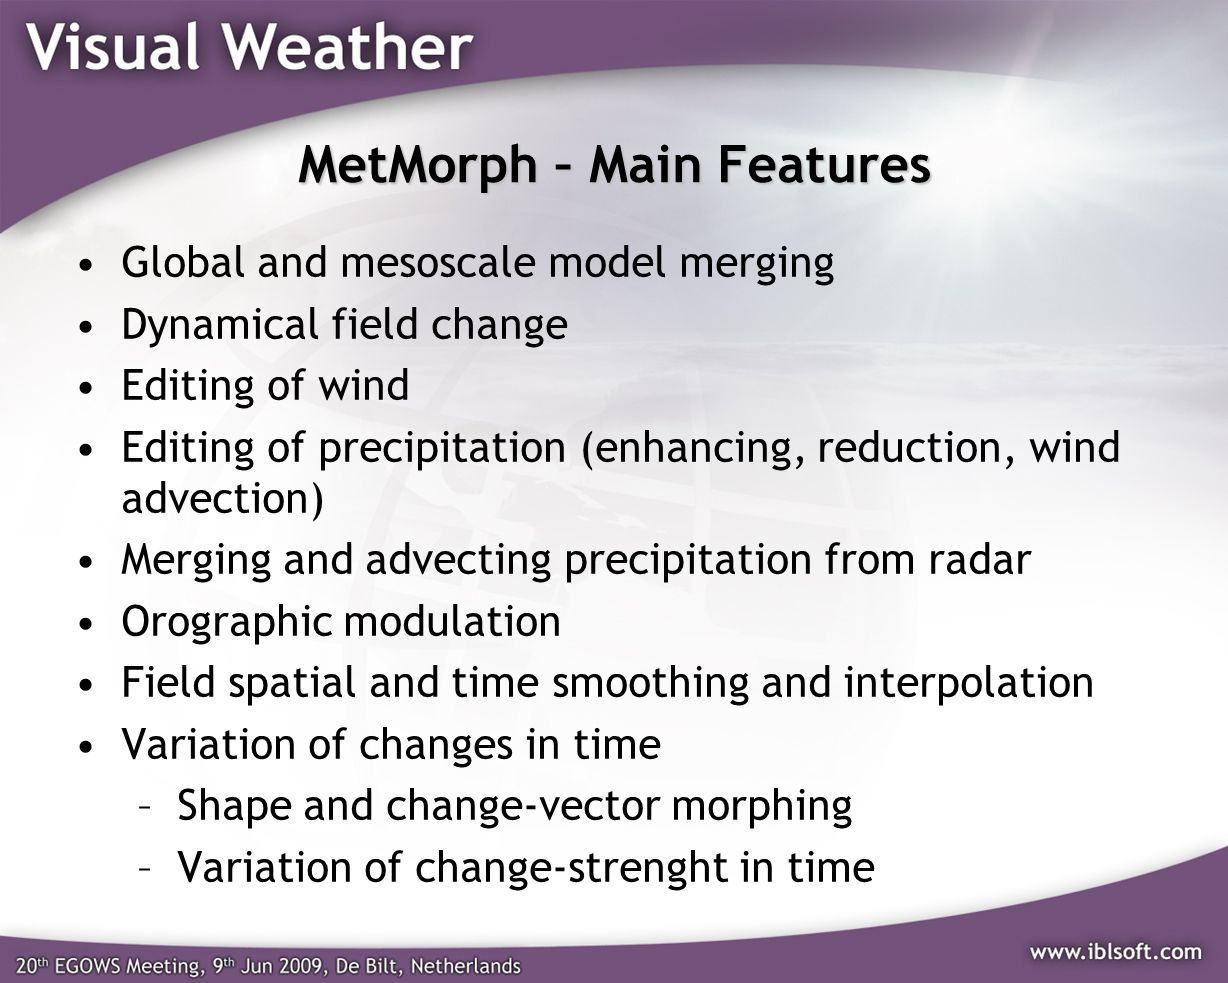 MetMorph – Main Features Global and mesoscale model merging Dynamical field change Editing of wind Editing of precipitation (enhancing, reduction, wind advection) Merging and advecting precipitation from radar Orographic modulation Field spatial and time smoothing and interpolation Variation of changes in time –Shape and change-vector morphing –Variation of change-strenght in time